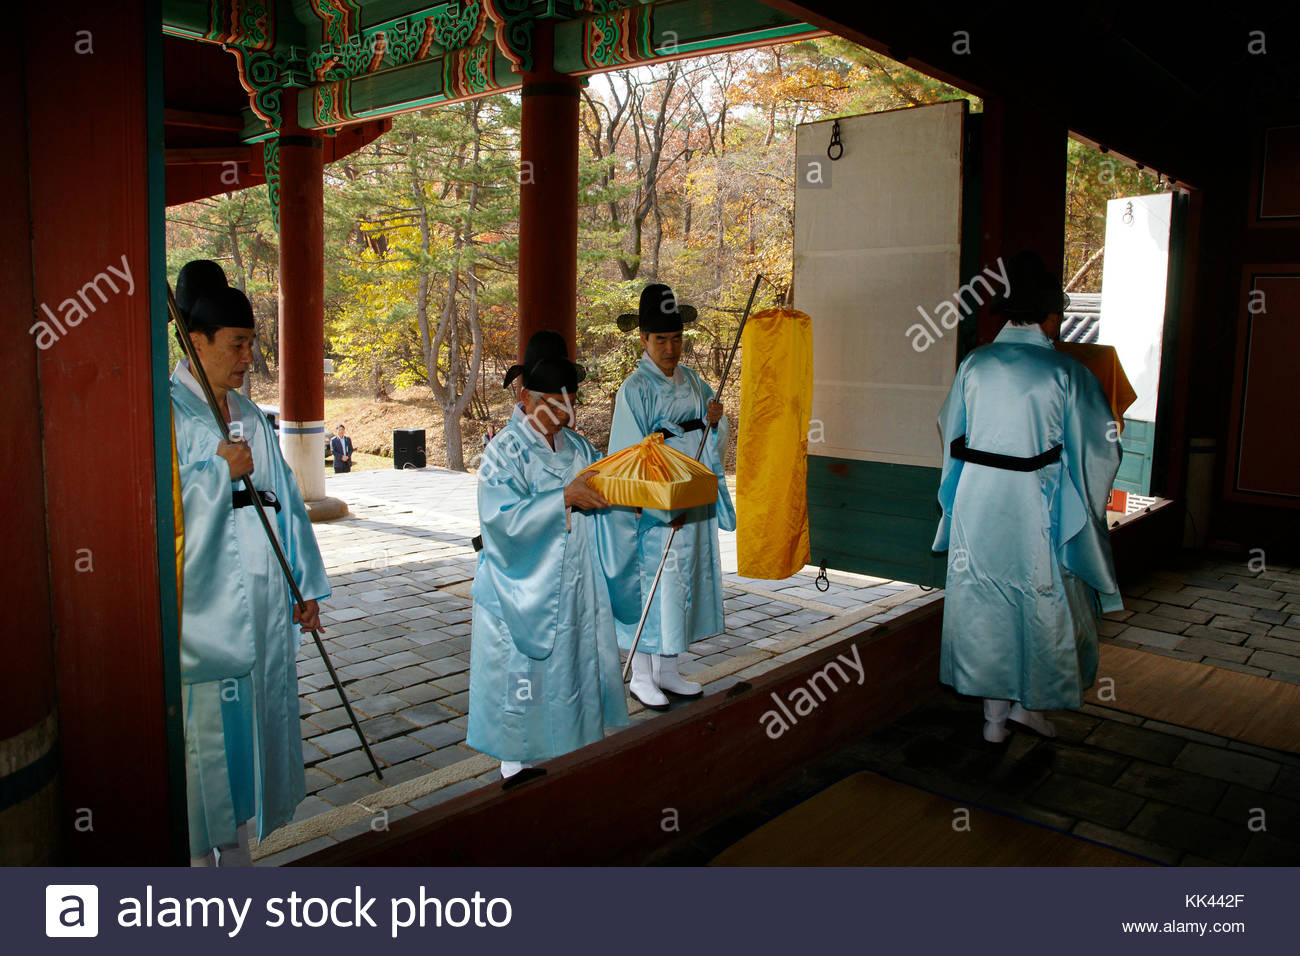 Korean history Royal Tombs of the Joseon Dynasty King Taejo Queen Shineui sending off the axle box - Stock Image